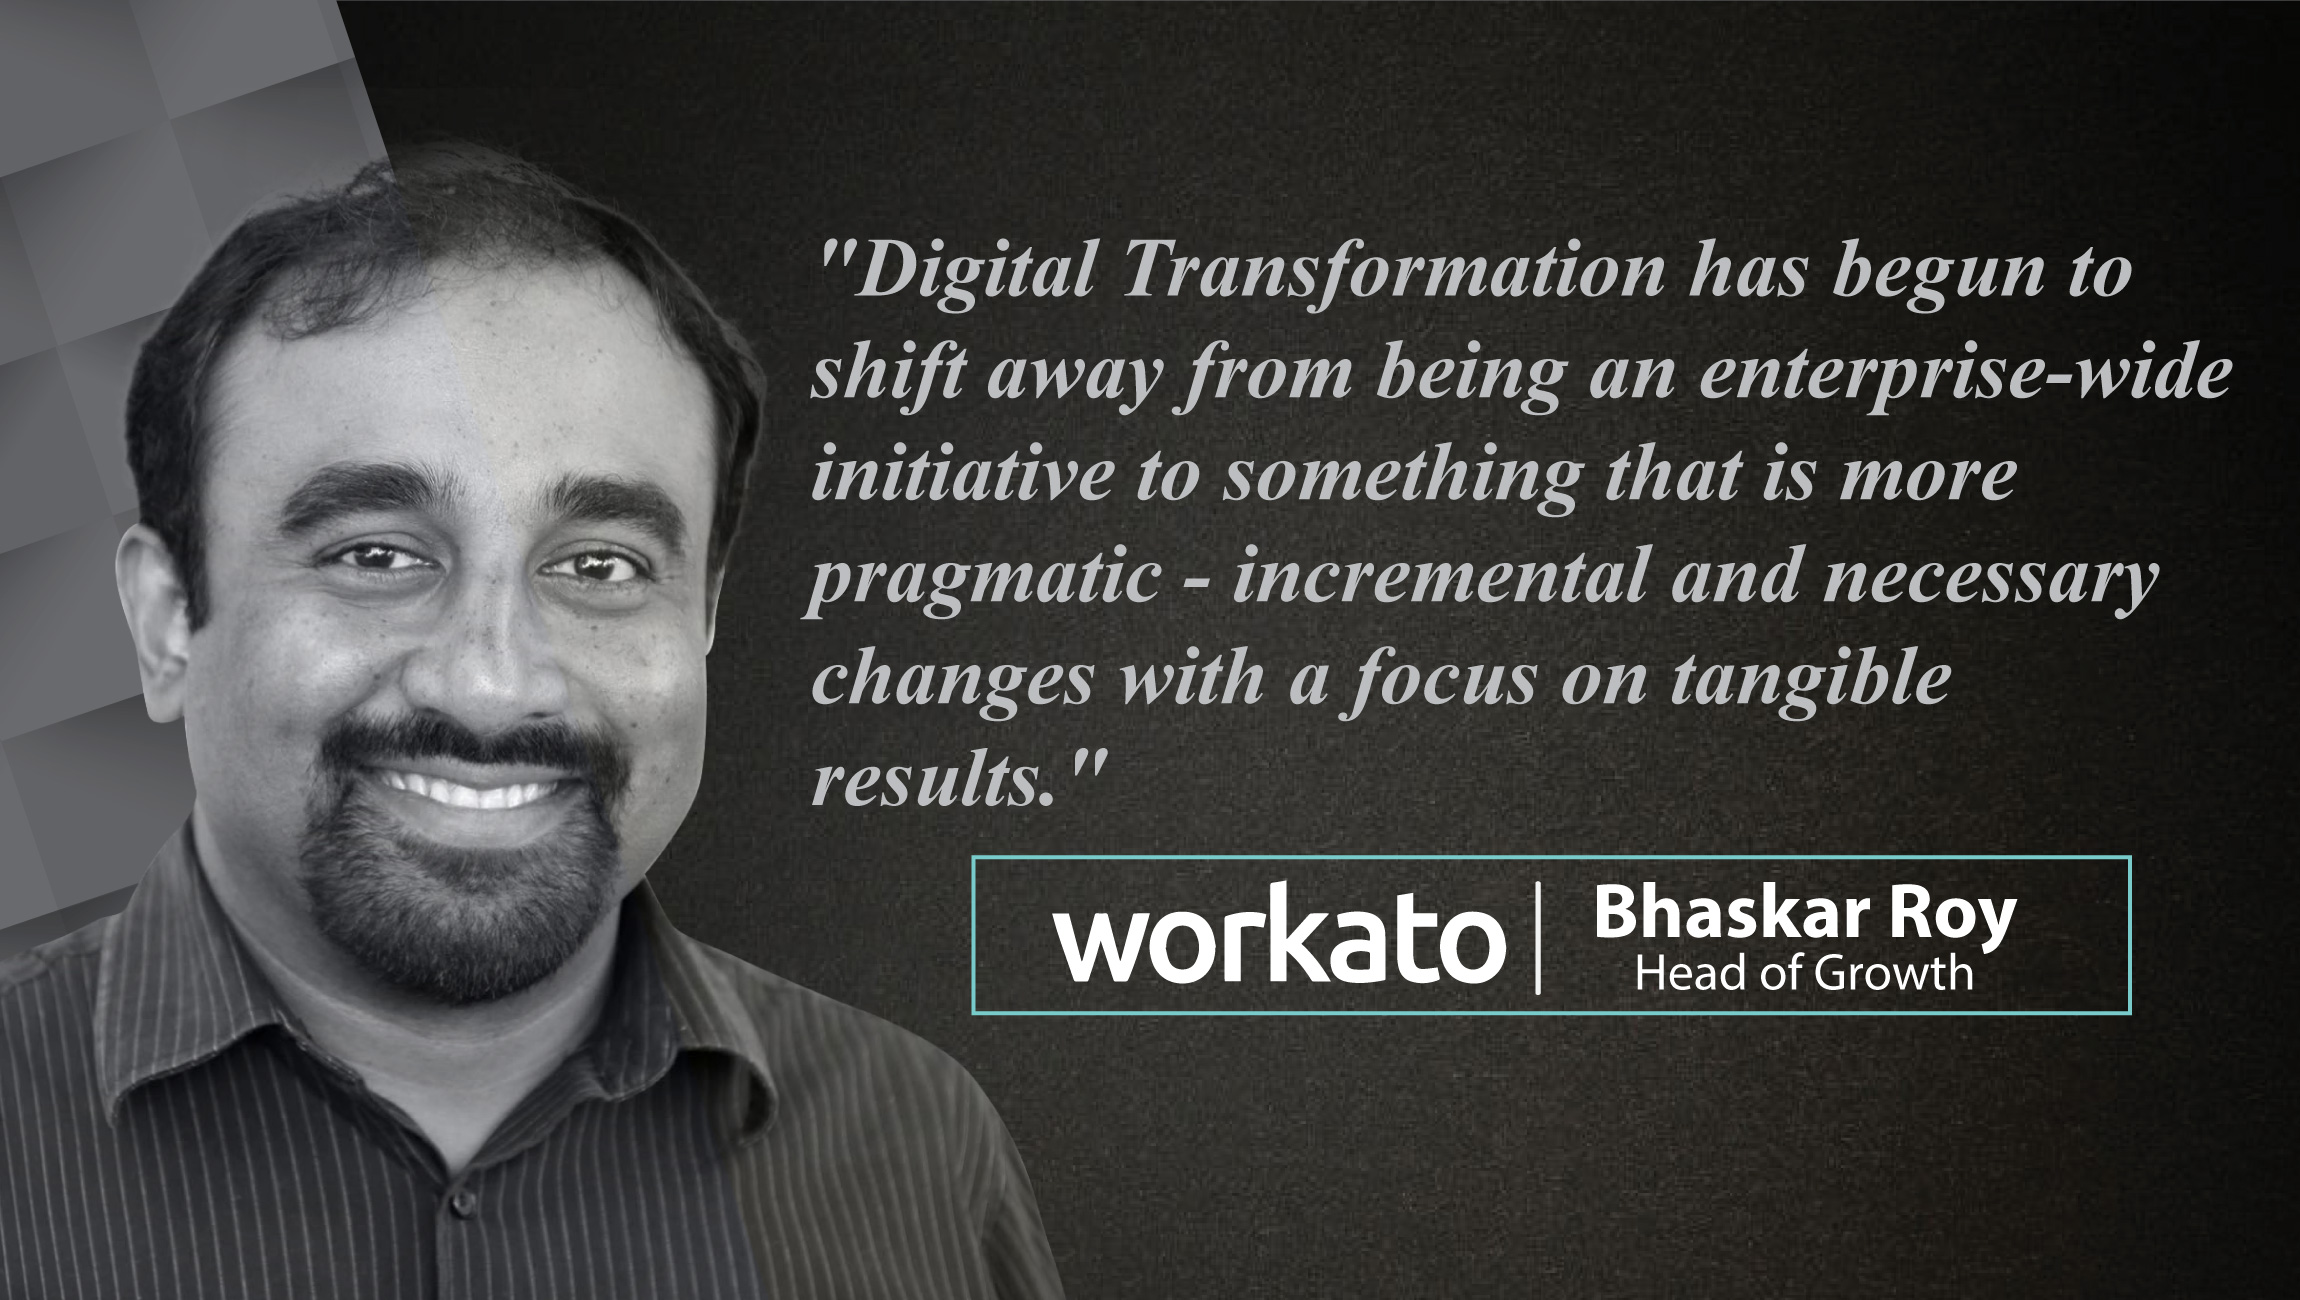 Interview with Bhaskar Roy, Head of Growth at Workato